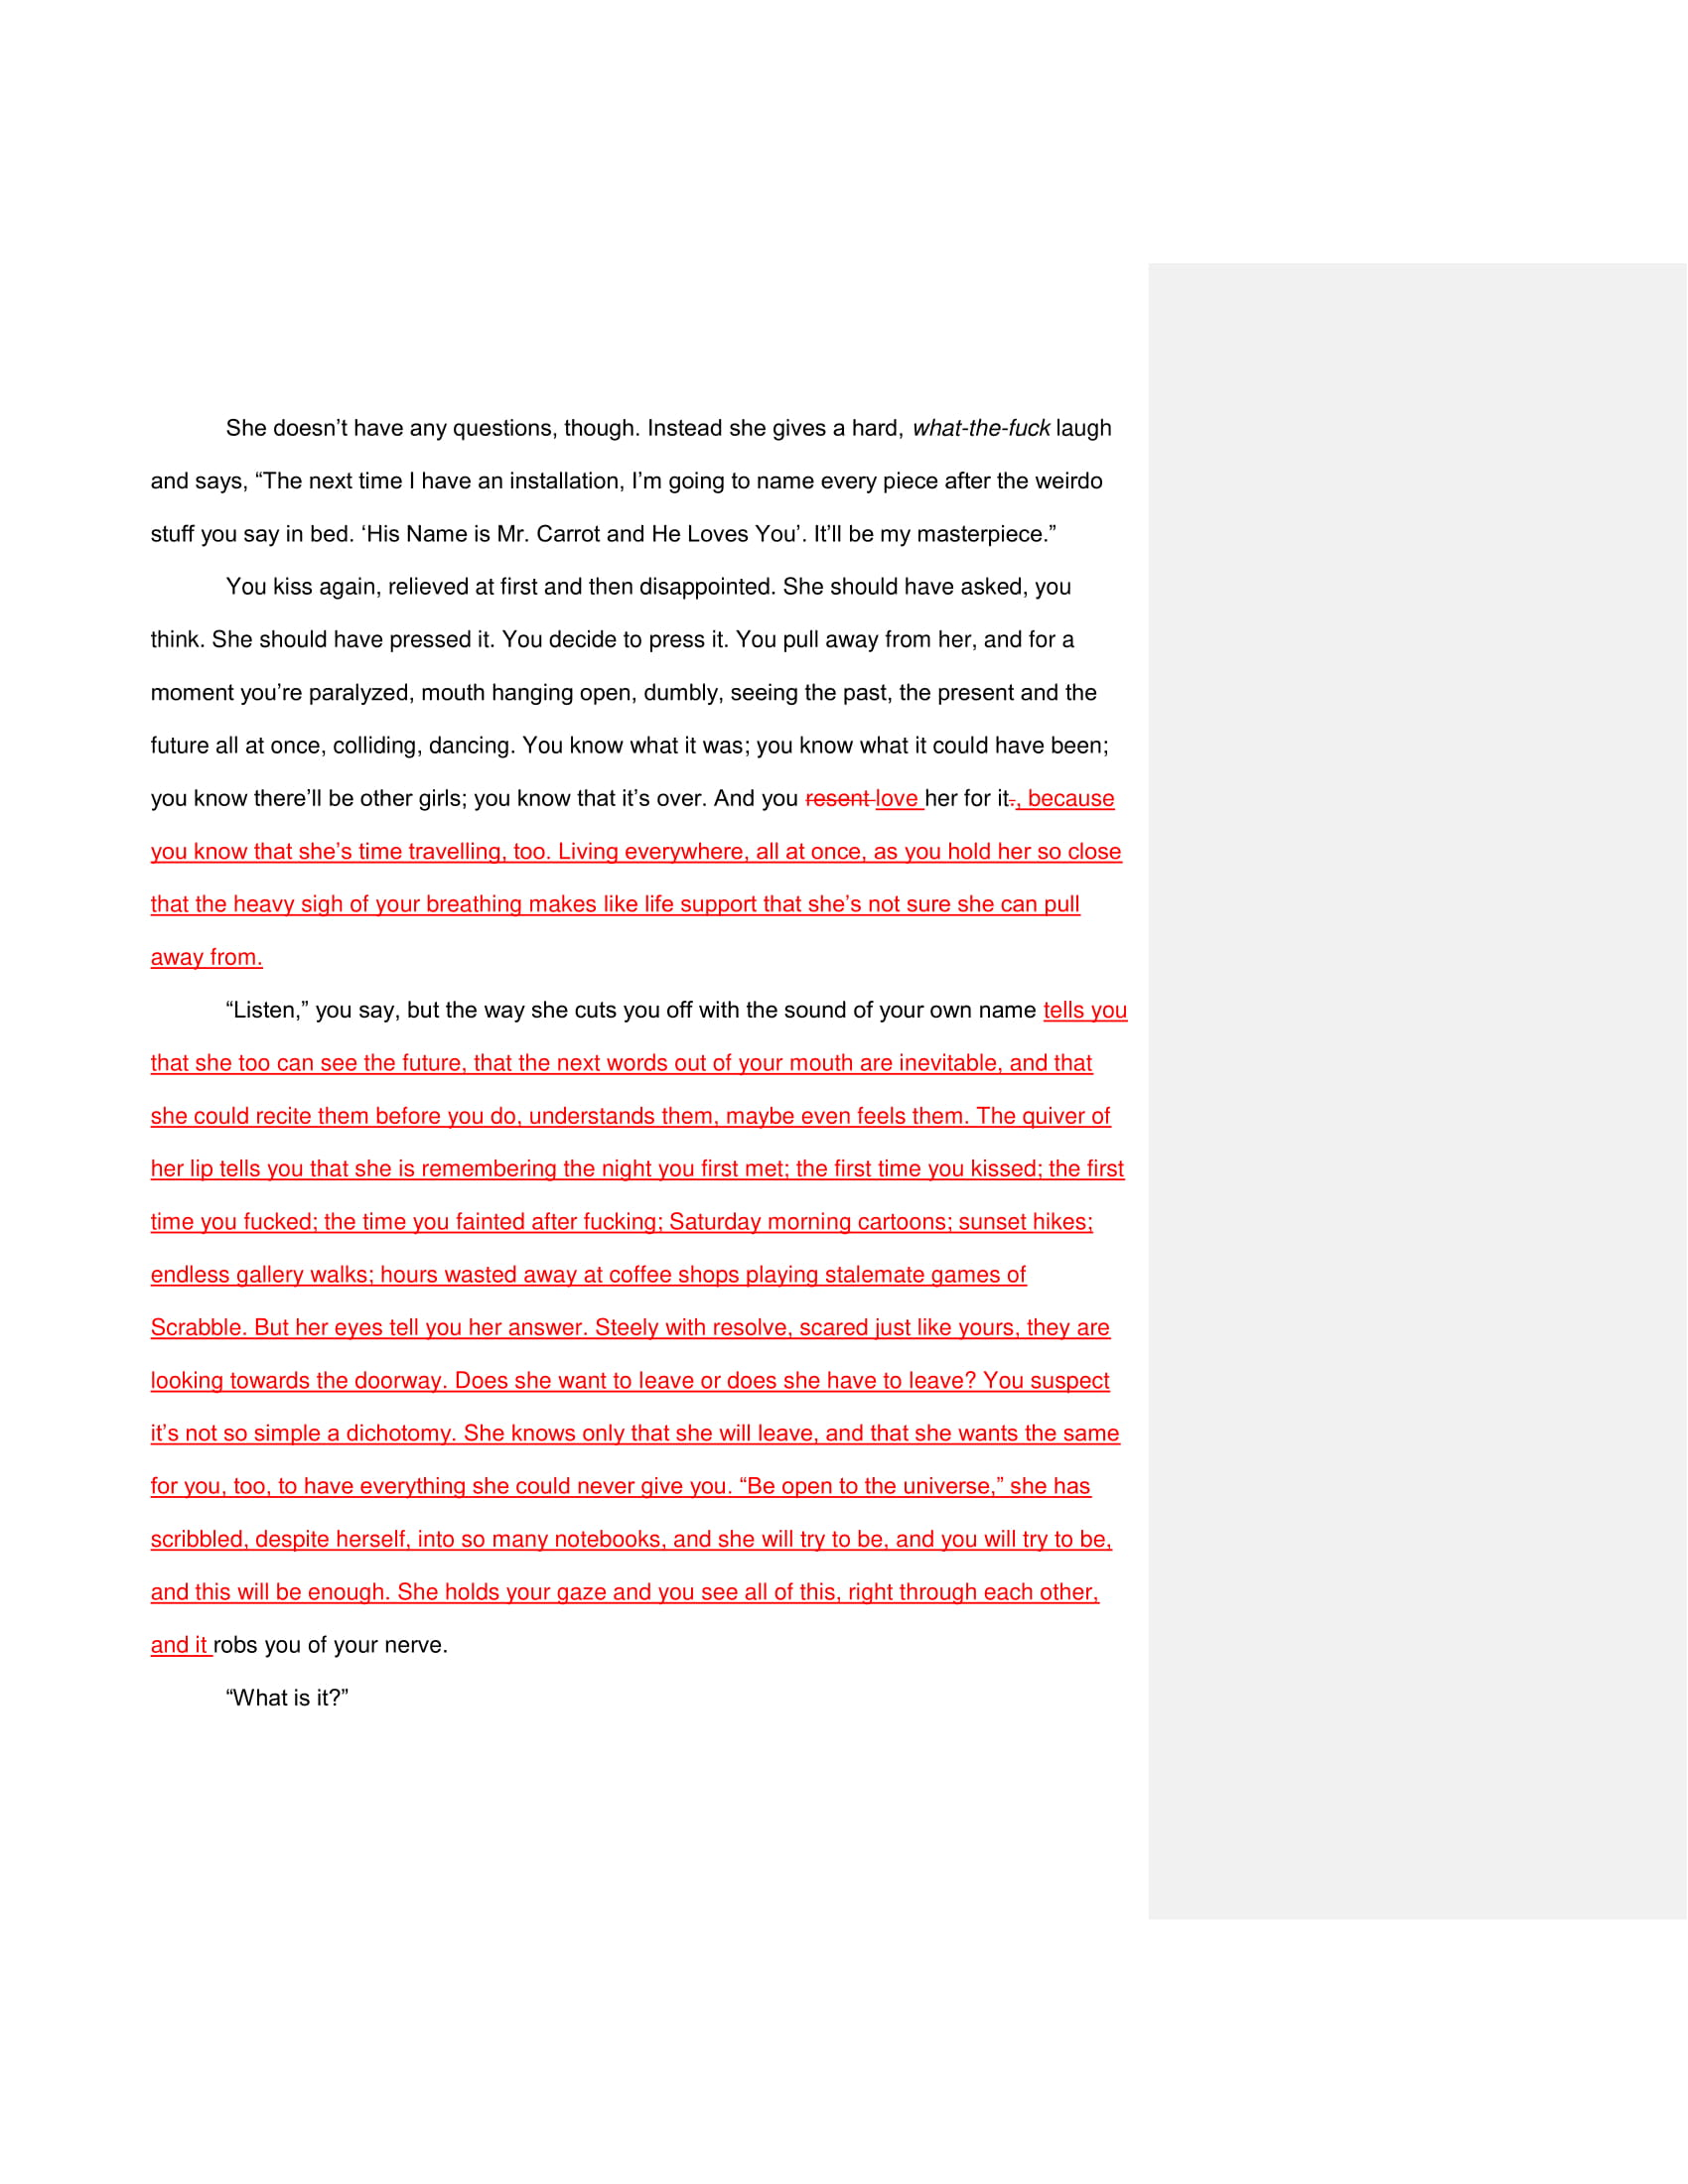 Untitled Love Story - First Draft-17.jpg